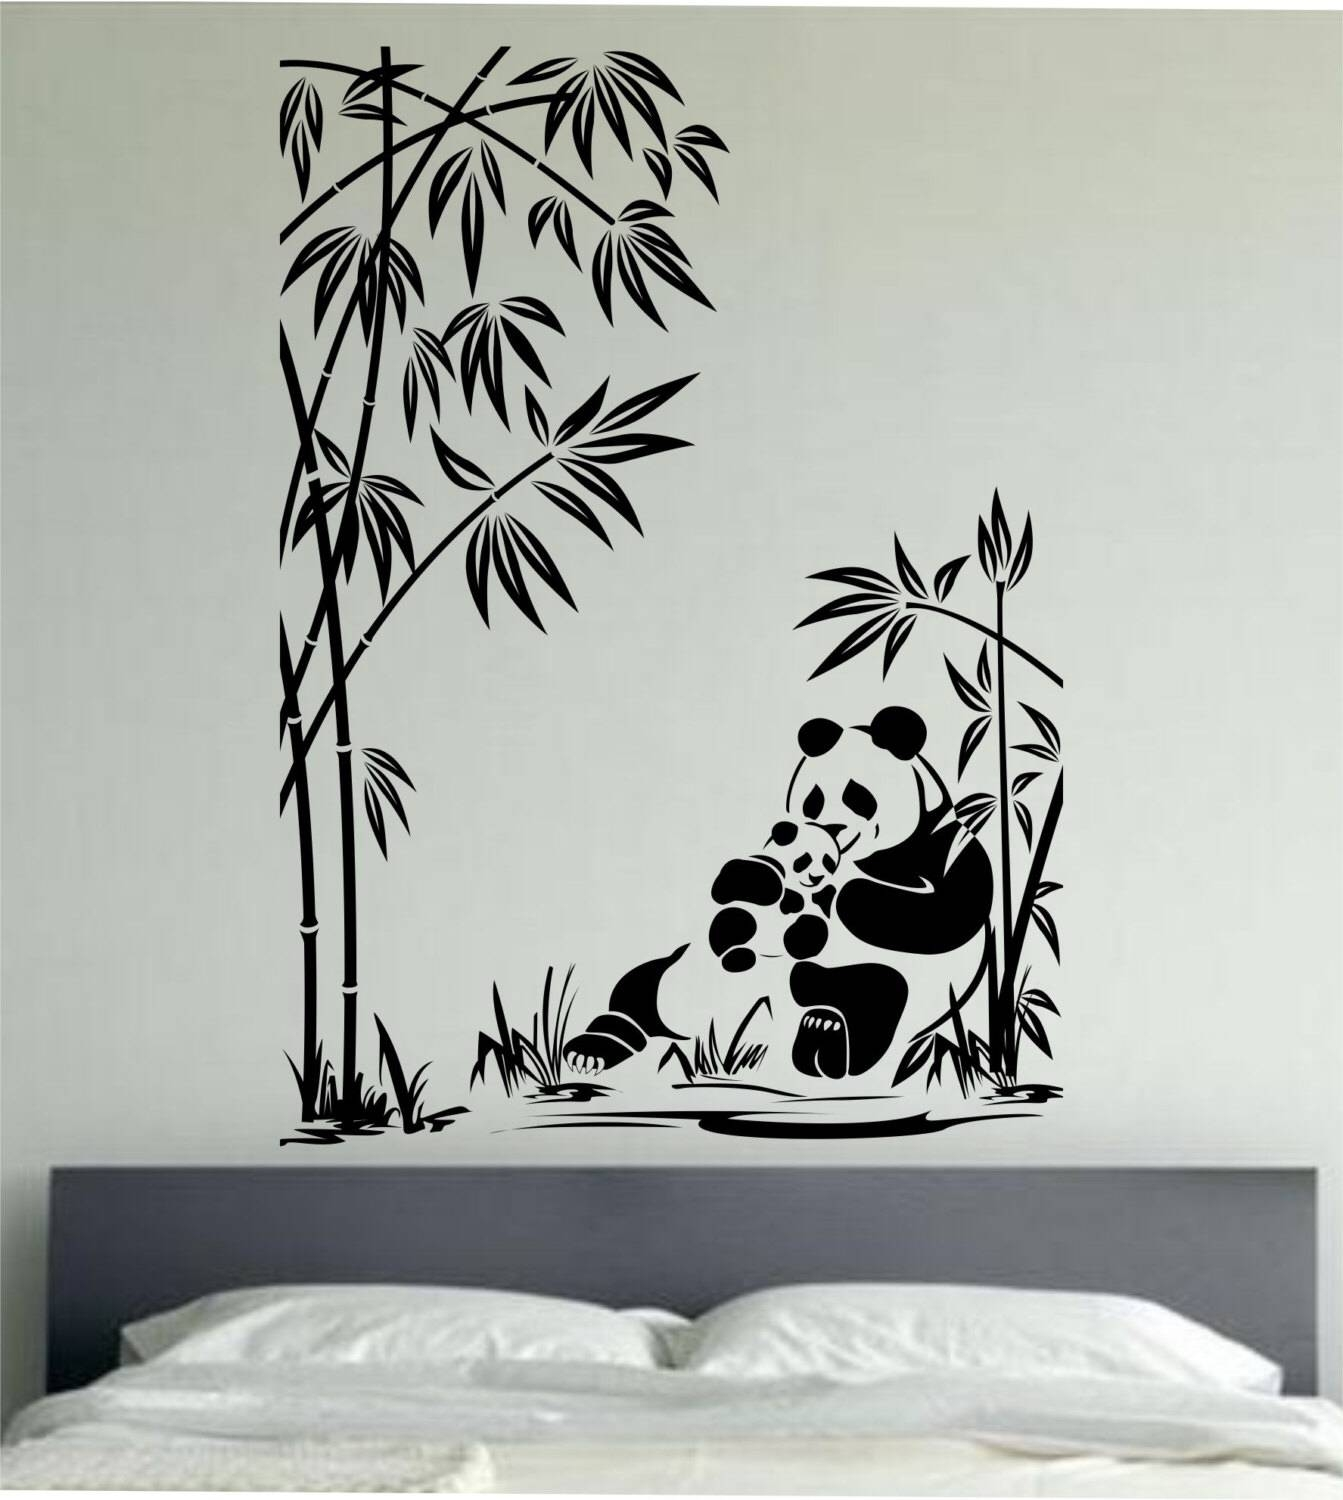 Wall Decor: Wall Decal Art Photo. Wall Art Stickers Decor (View 15 of 20)